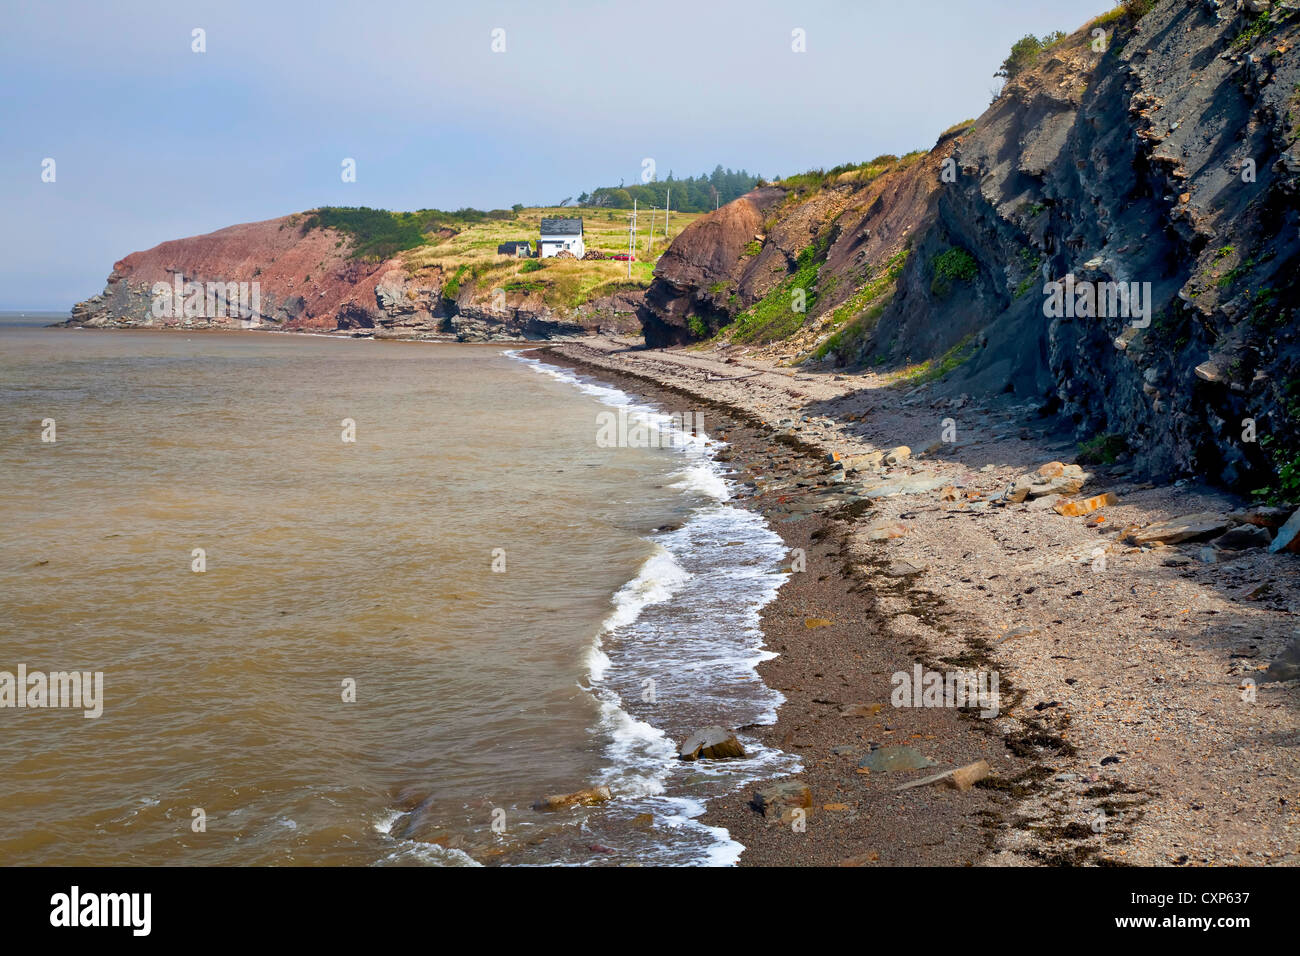 world famous fossil cliffs on the bay of fundy  at joggins